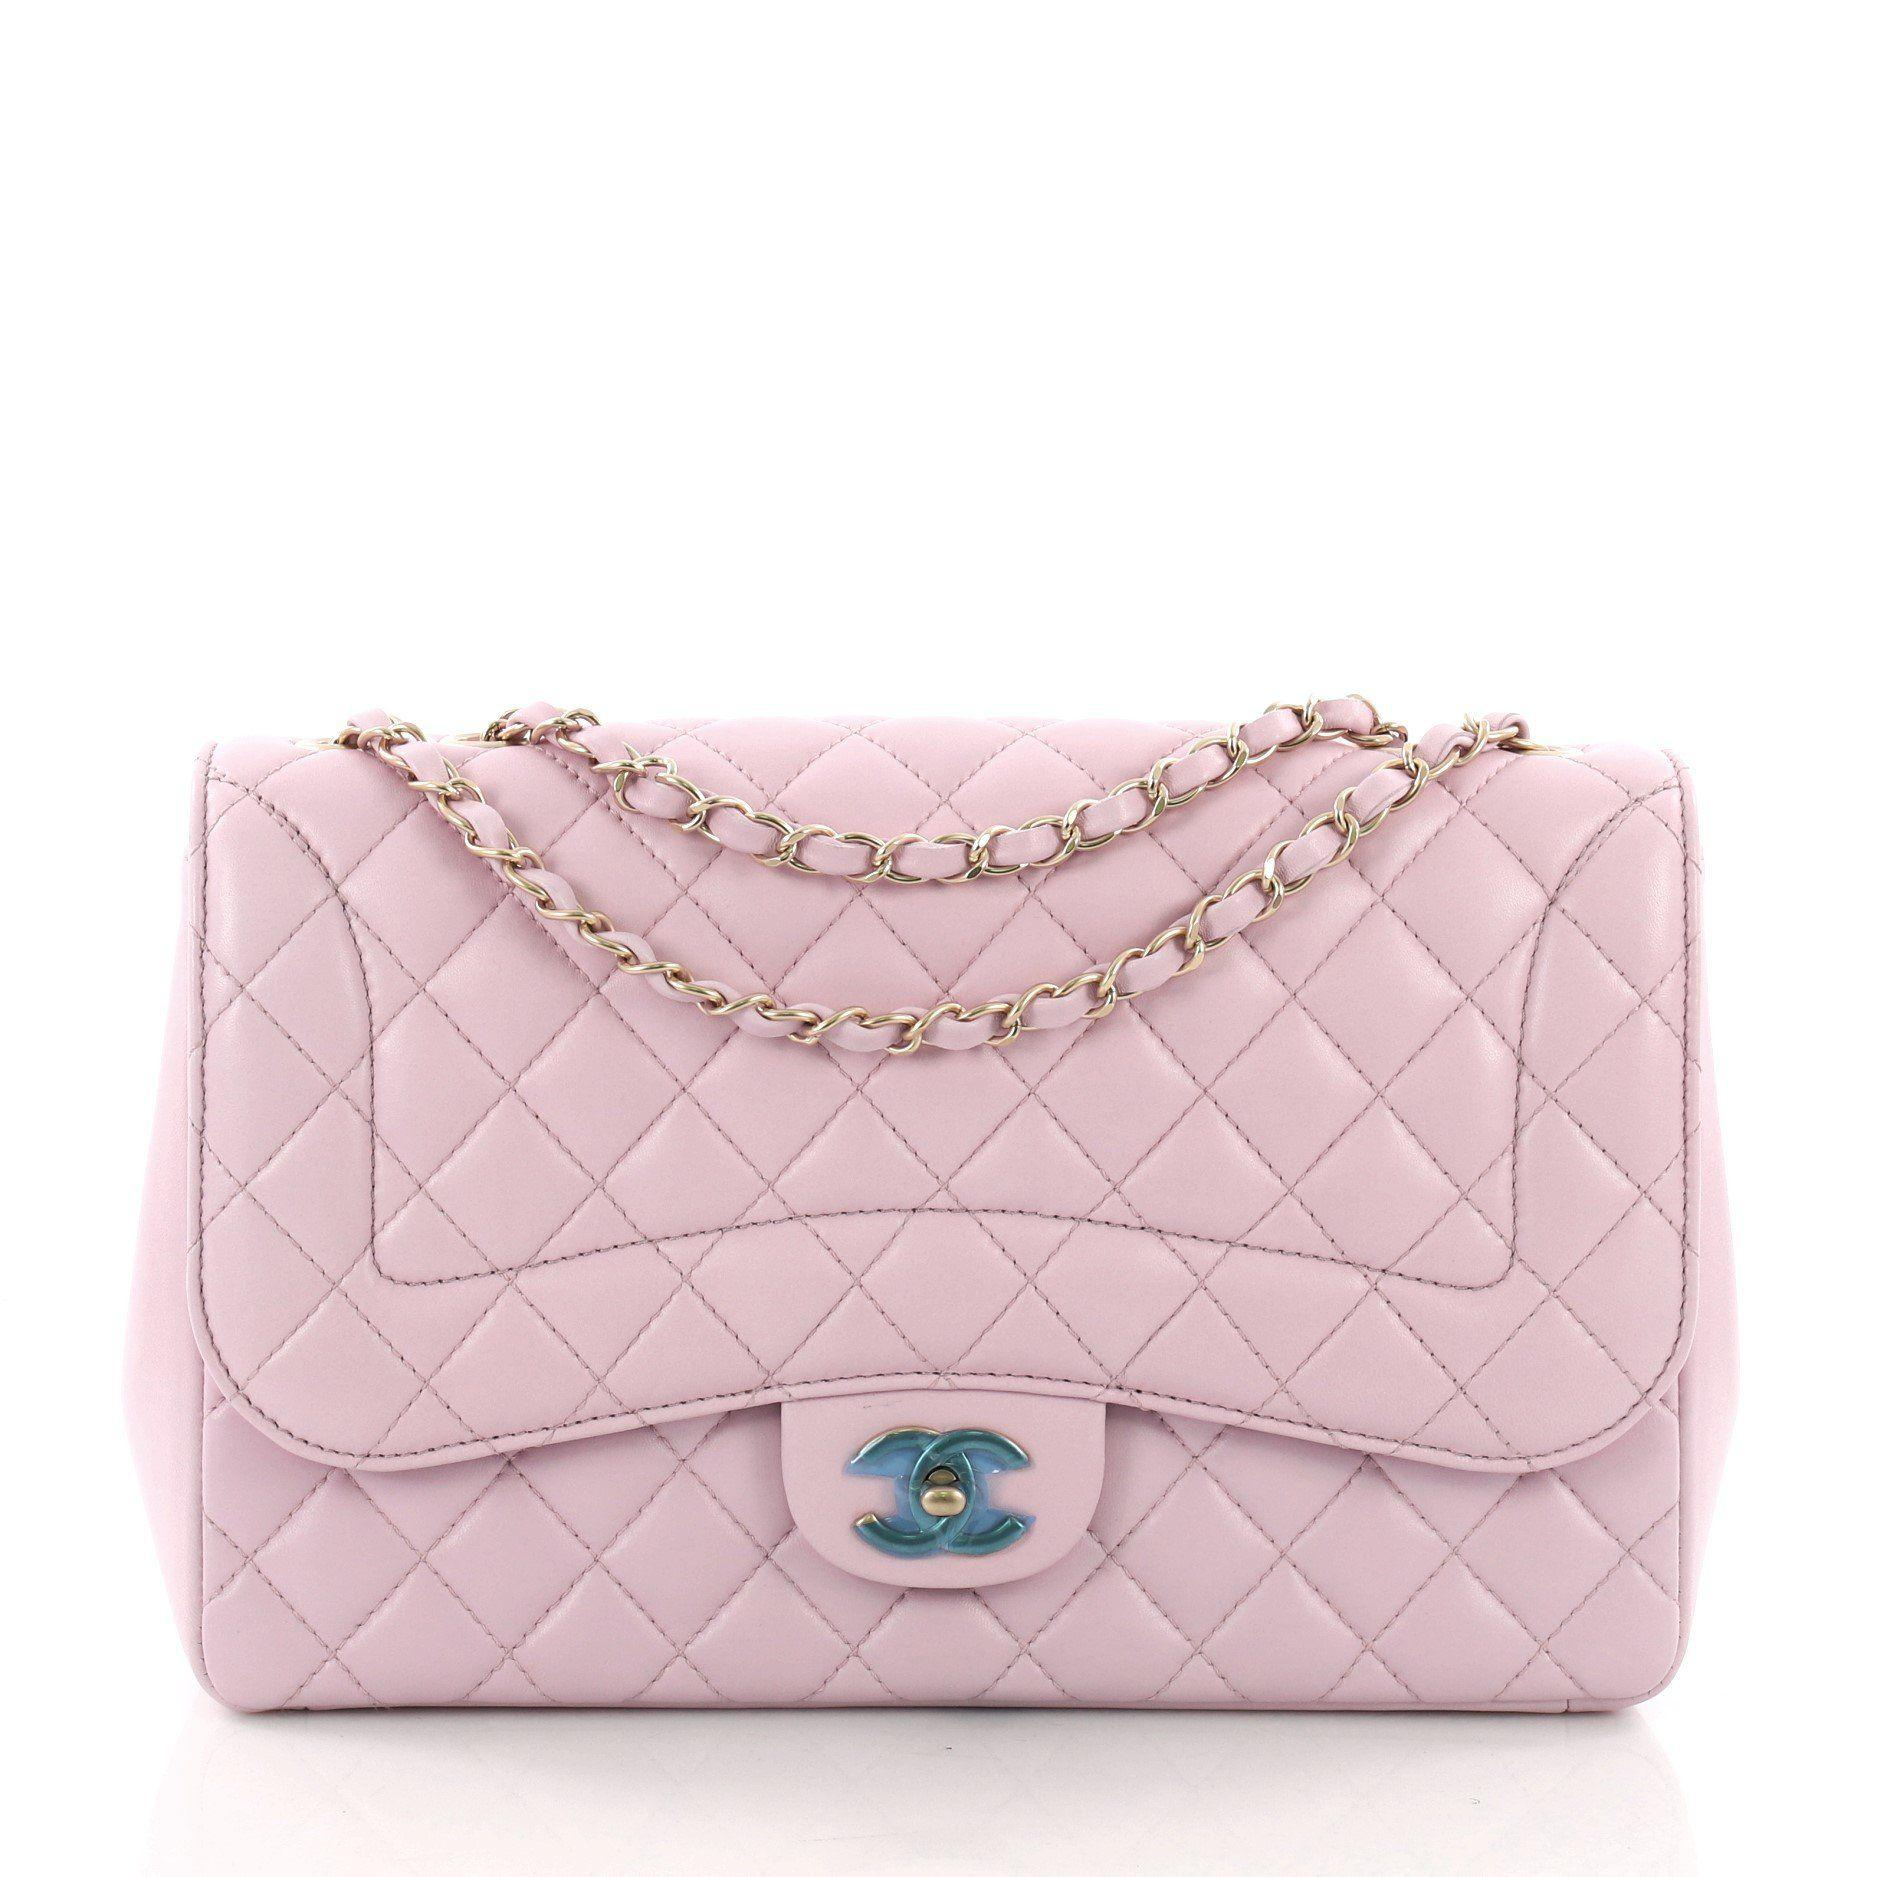 da73c8fe53 Lyst - Chanel Pre Owned Mademoiselle Chic Flap Bag Quilted Lambskin ...